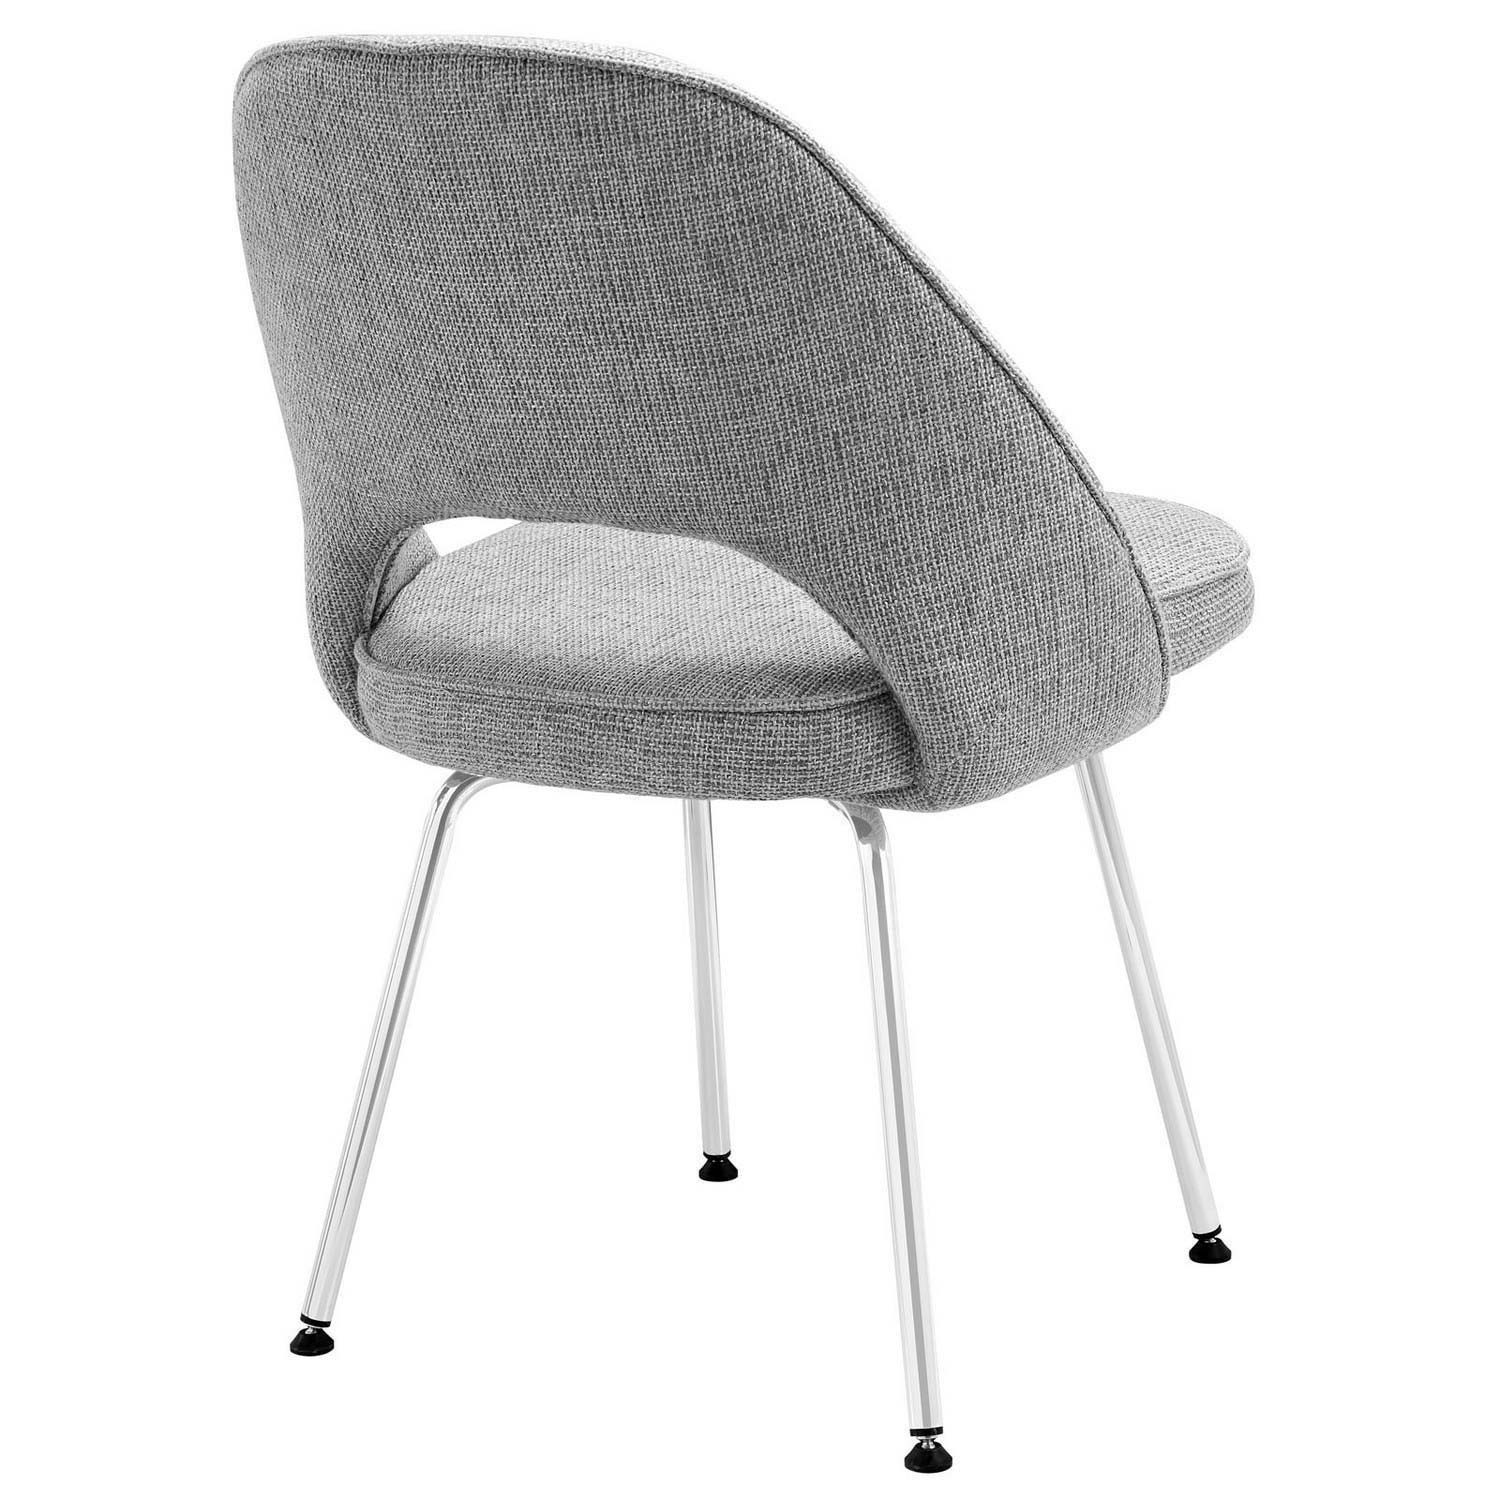 Modway Cordelia Dining Chairs Set of 2 - Light Gray